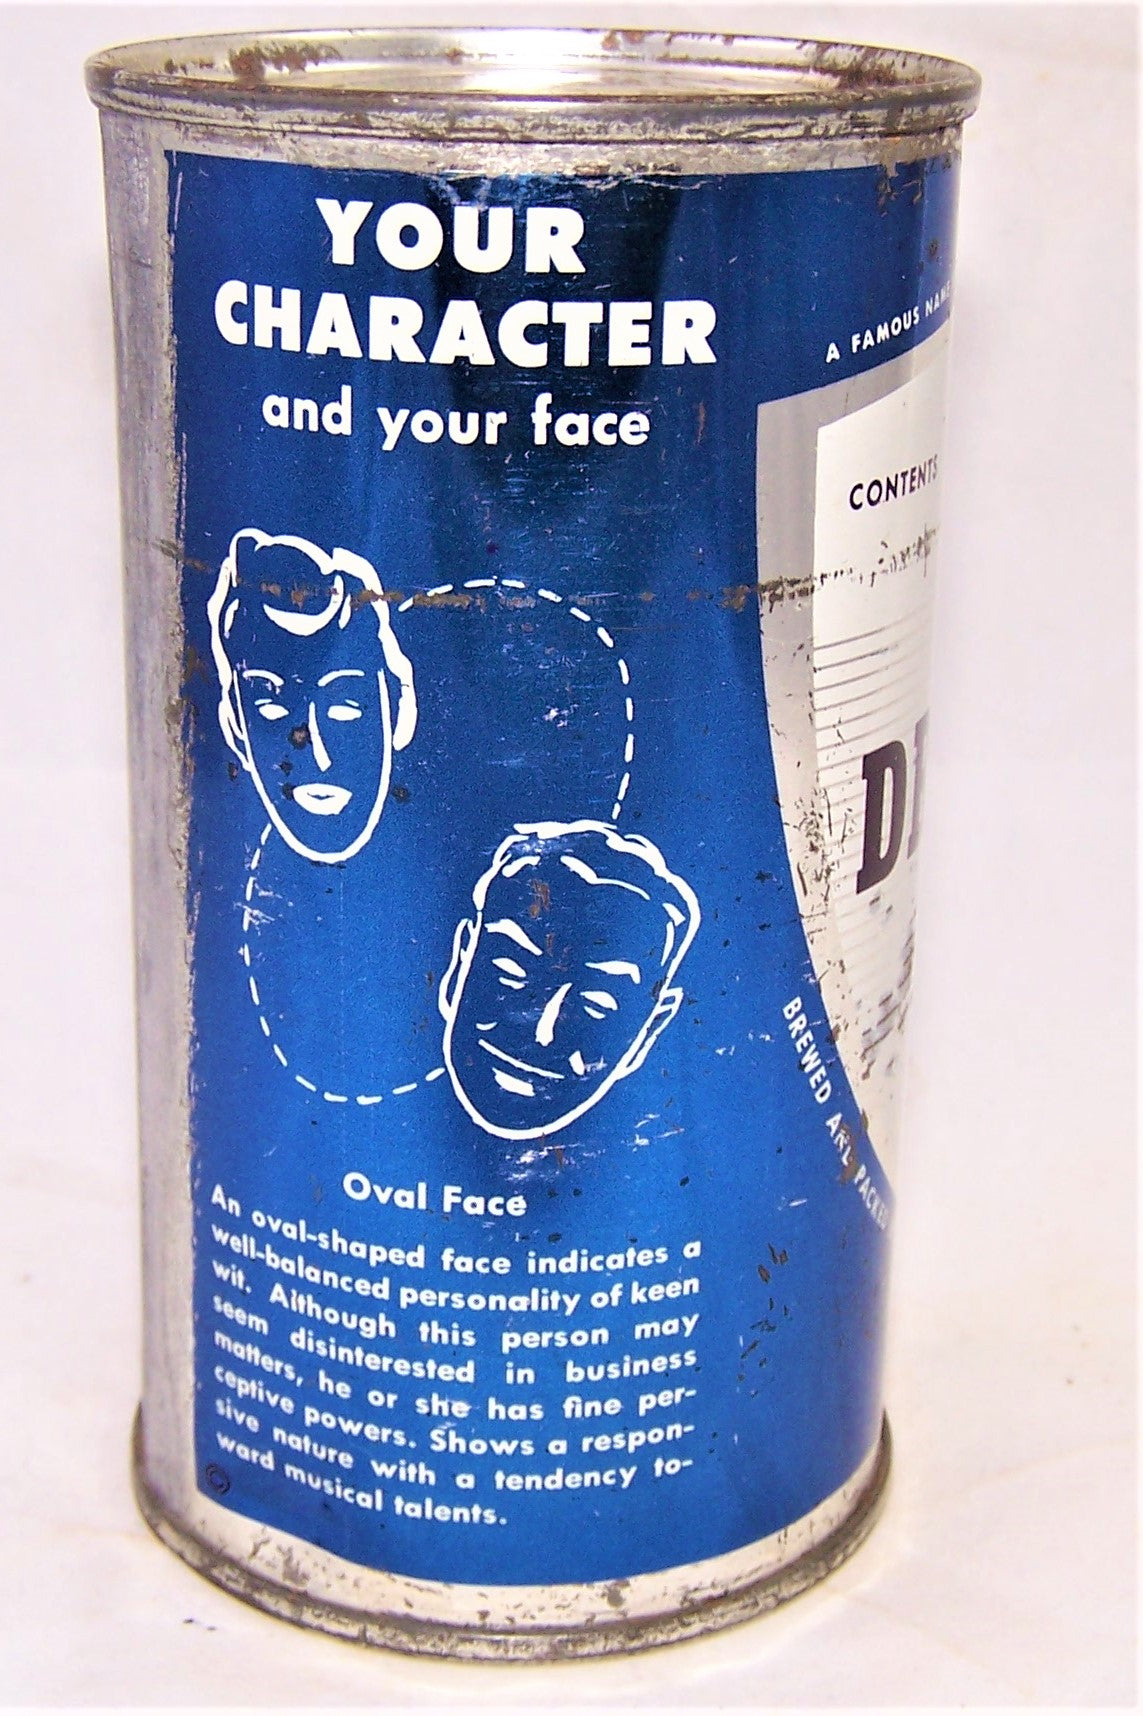 Drewrys Extra Dry (Your Character) USBC 56-40, Grade 1-